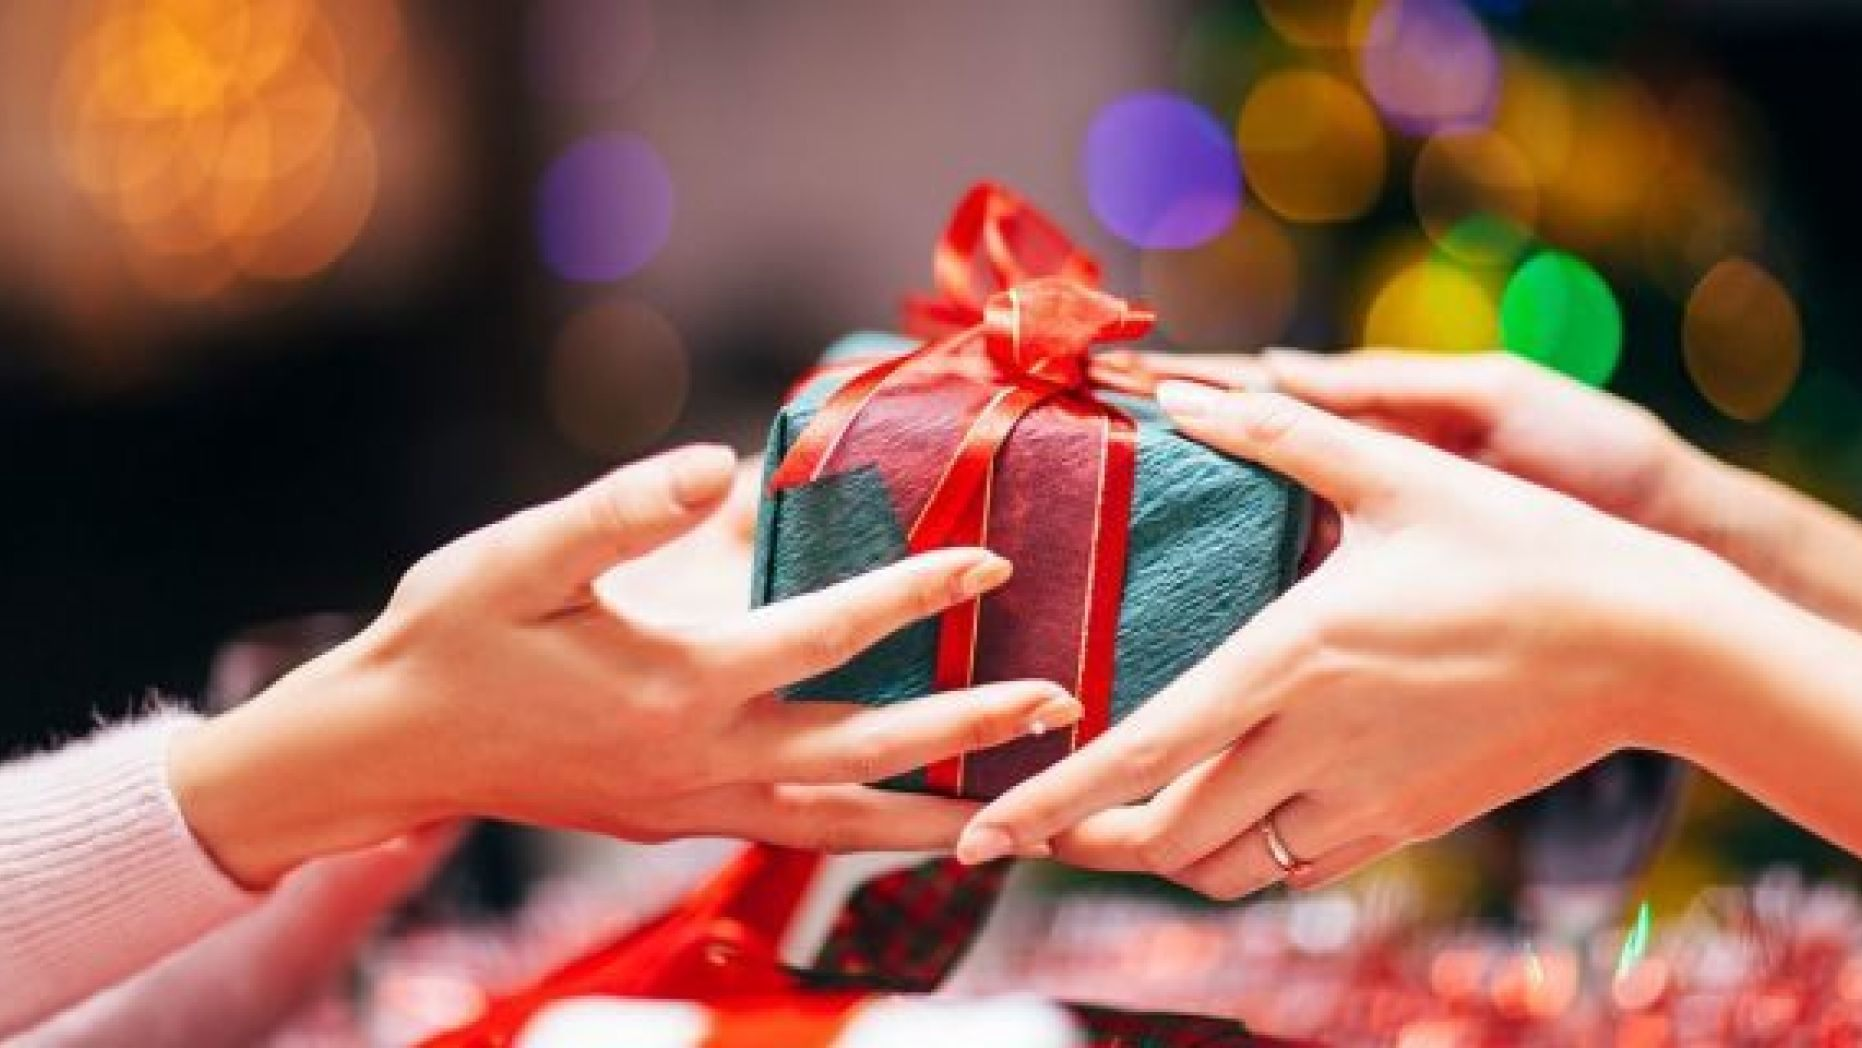 A school principal caused a commotion in Nebraska by trying to ban some Christmas-related items.